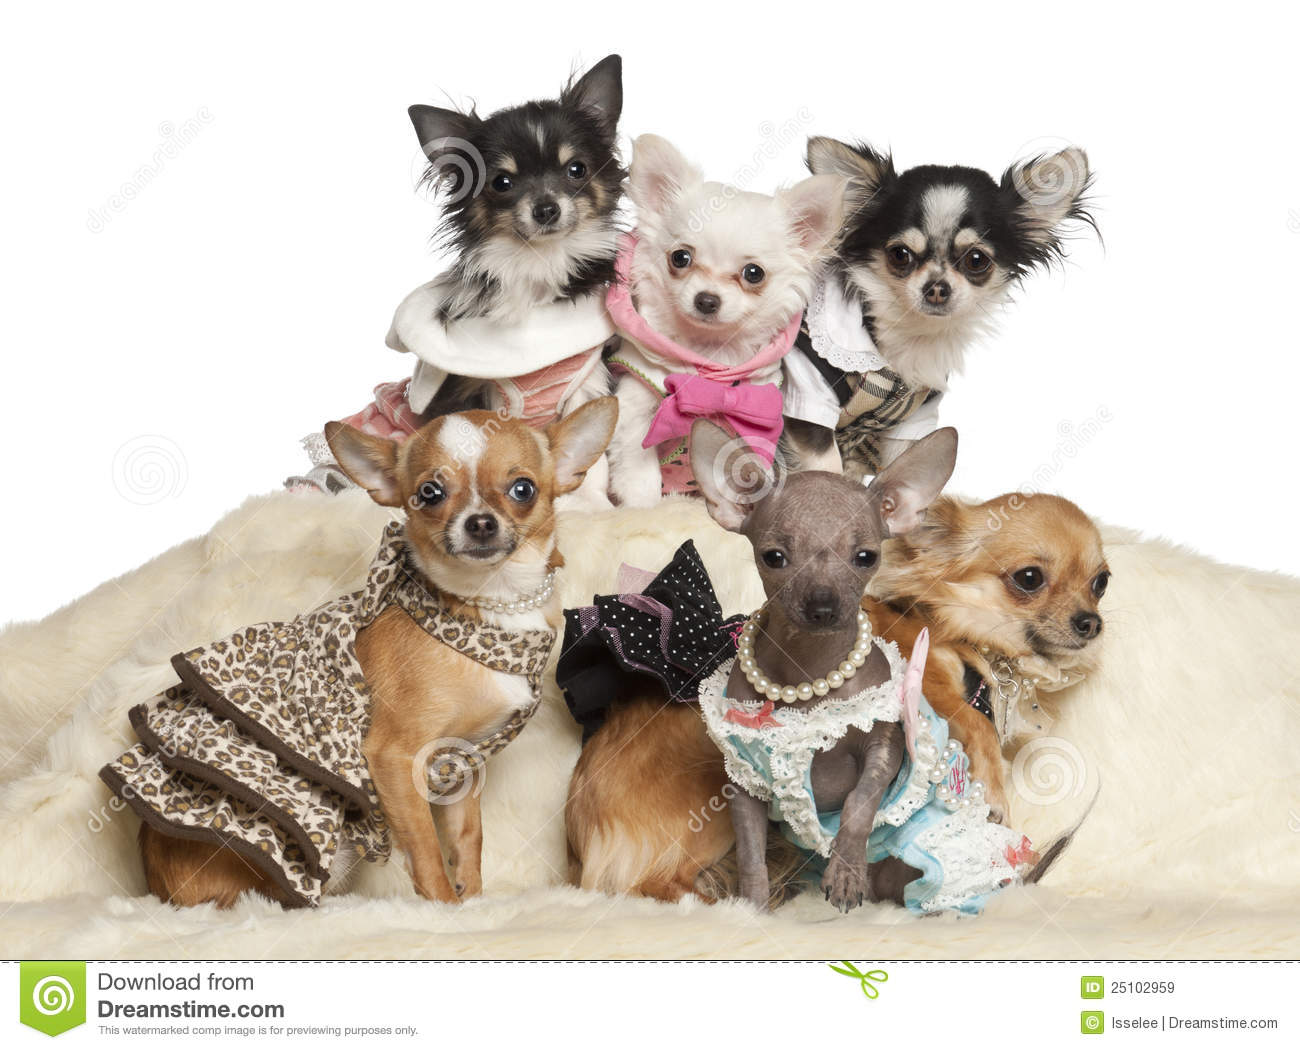 Chihuahua Puppies And Adults In Clothing Sitting Royalty Free Stock ...